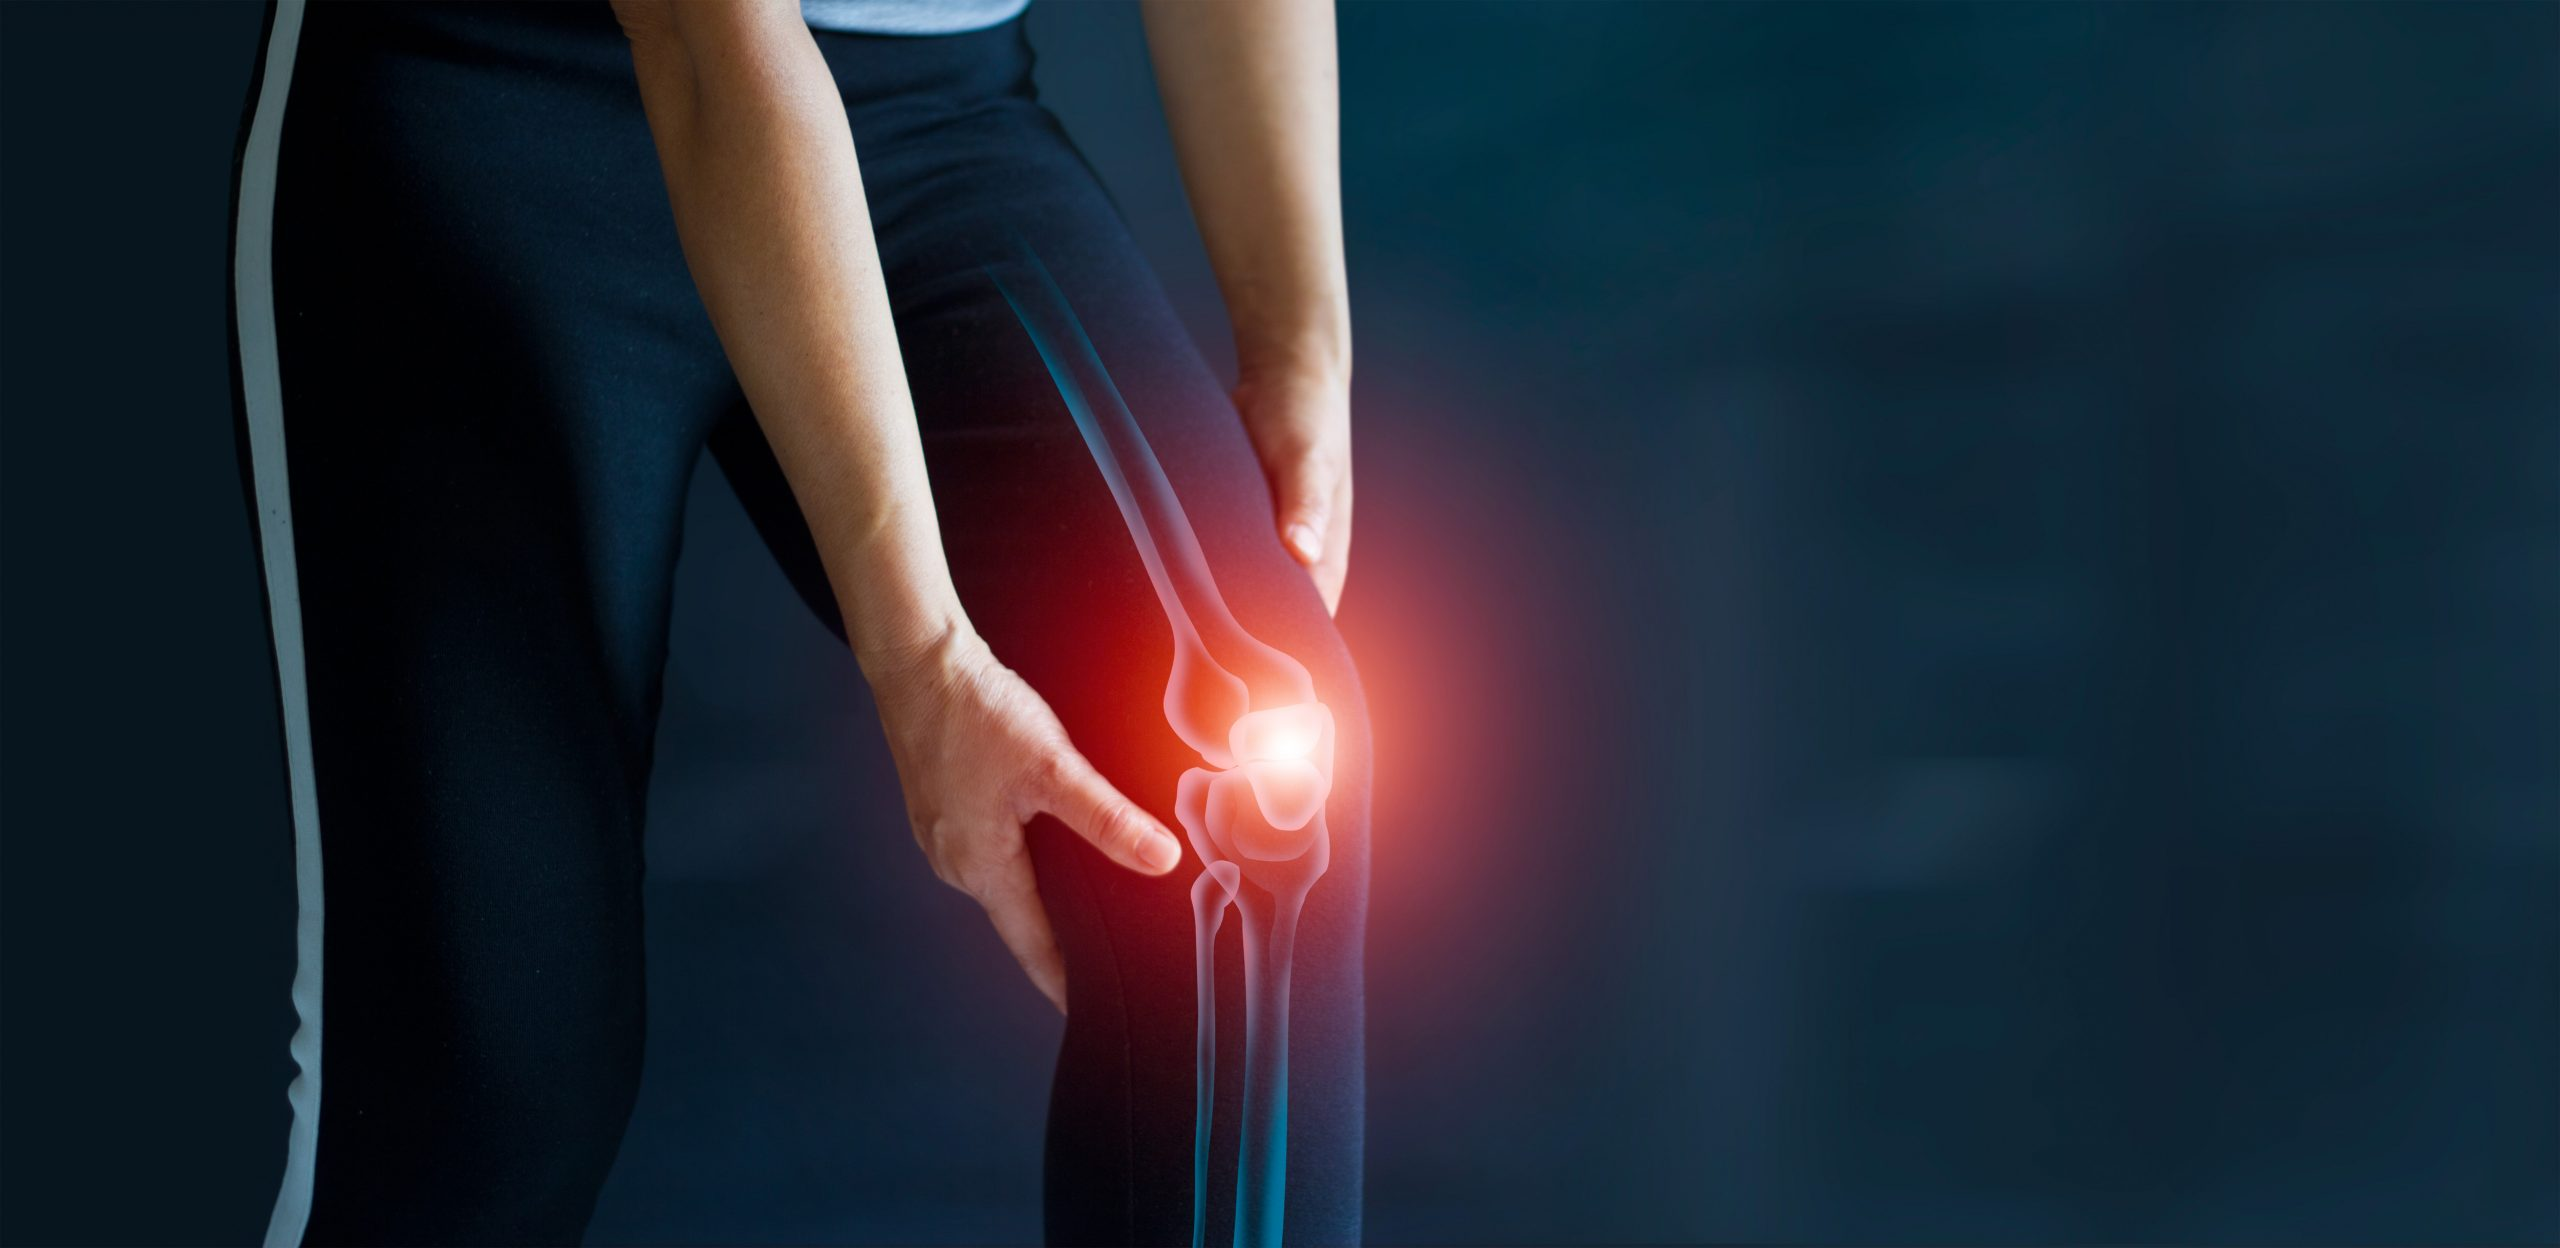 Top 10 Leg Exercises For Bad Knees